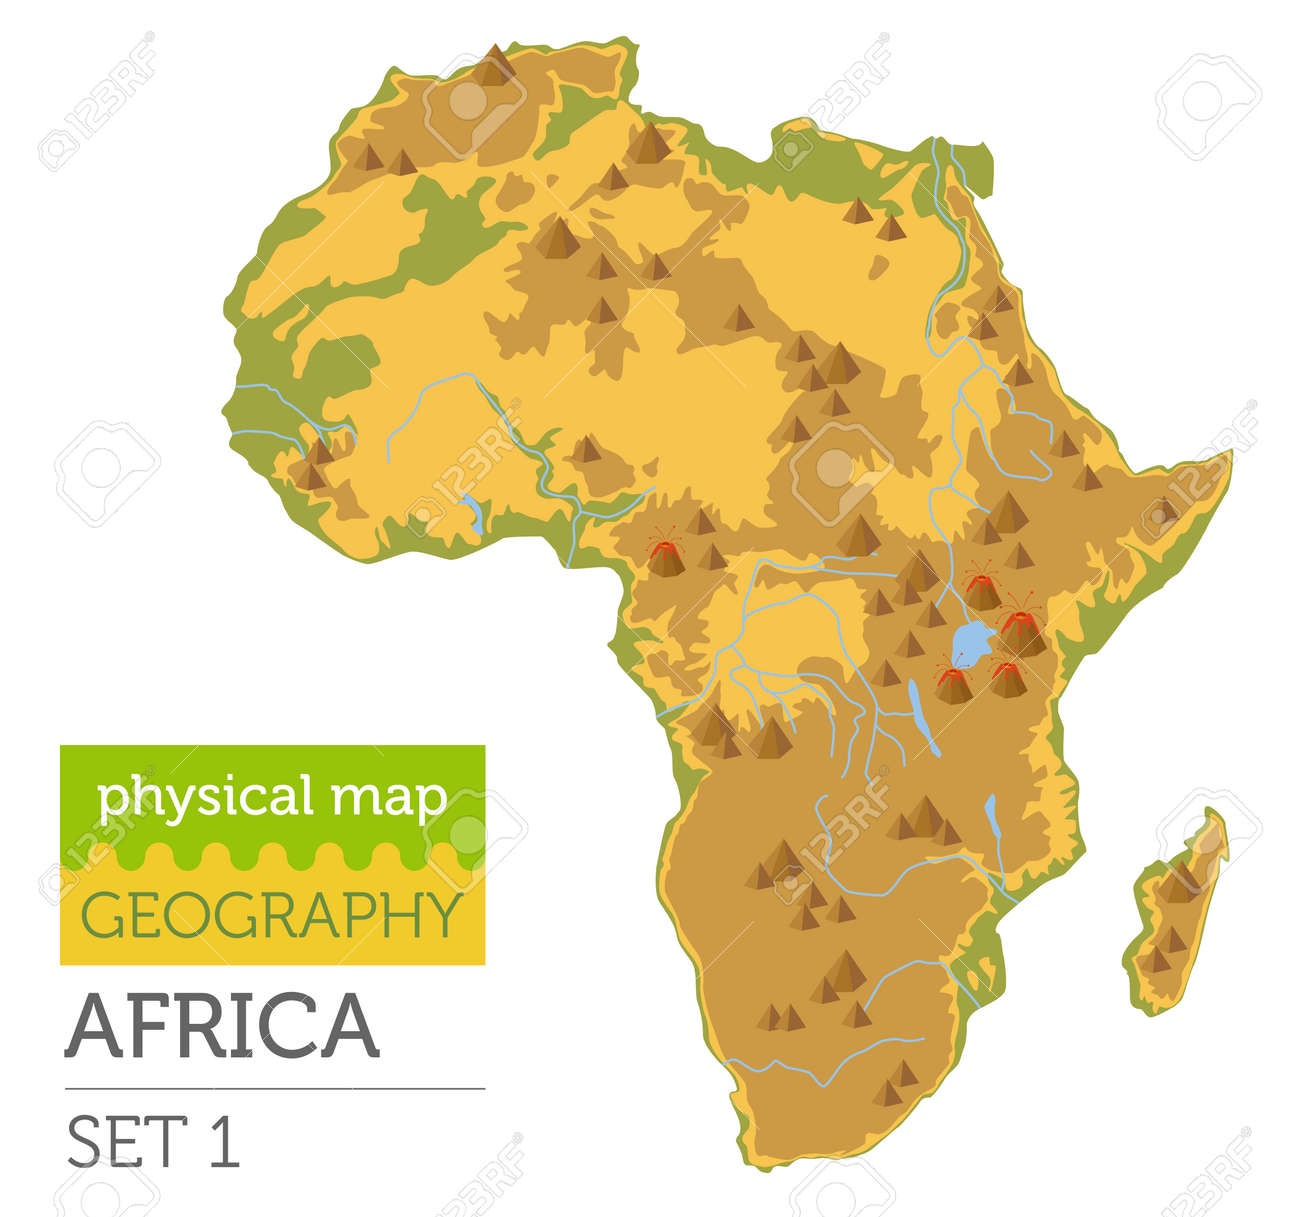 Physische Karte Afrika.Stock Photo